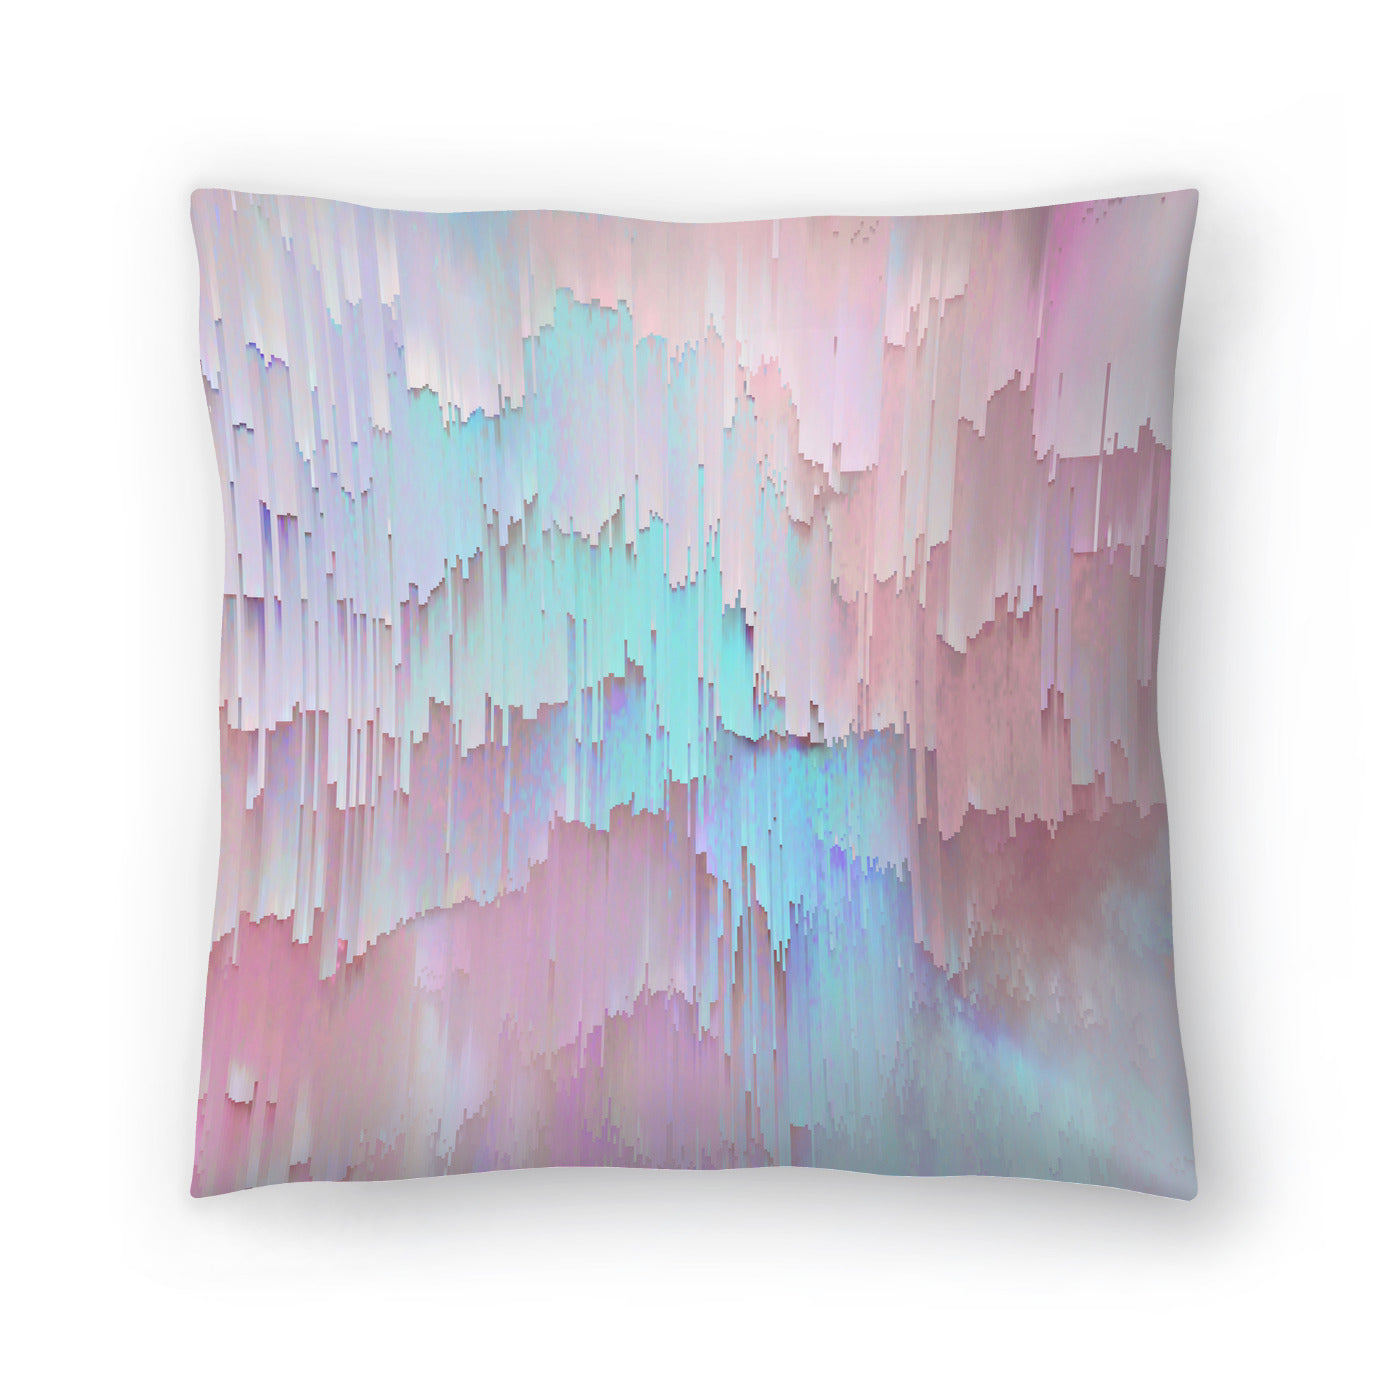 Light Blue And Pink Glitches by Emanuela Carratoni Decorative Pillow - Decorative Pillow - Americanflat